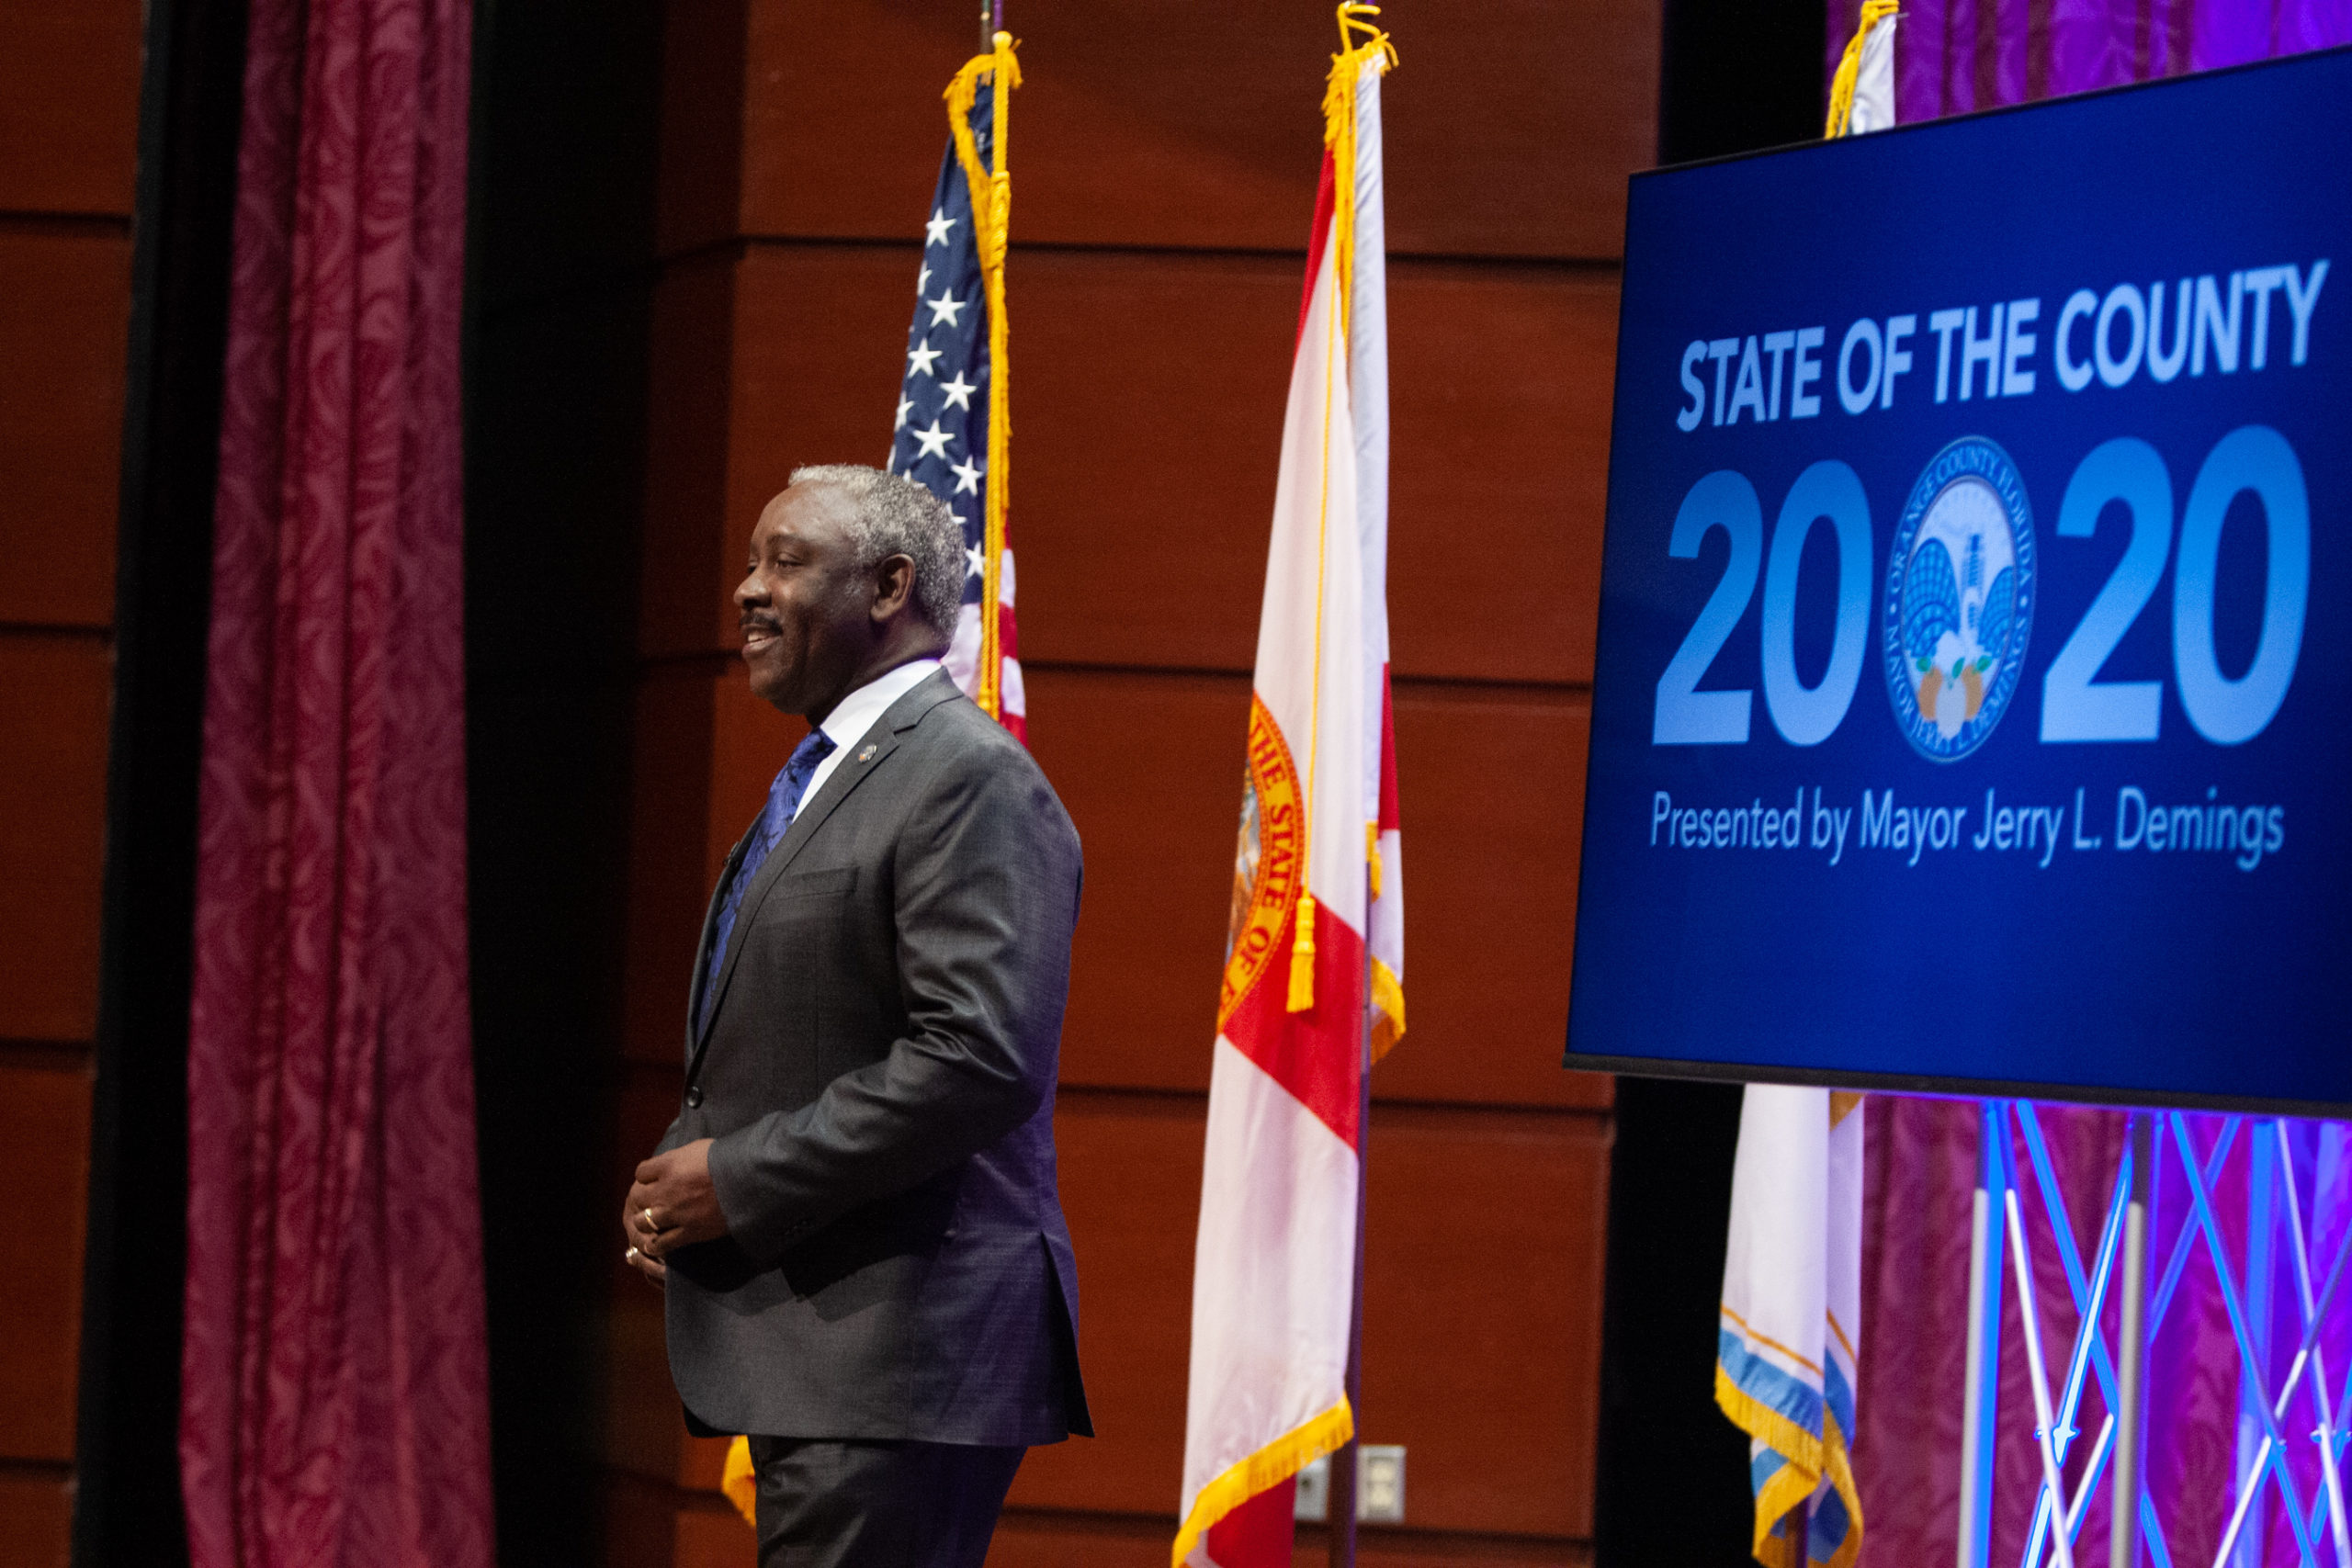 Mayor Demings standing on stage during the 2020